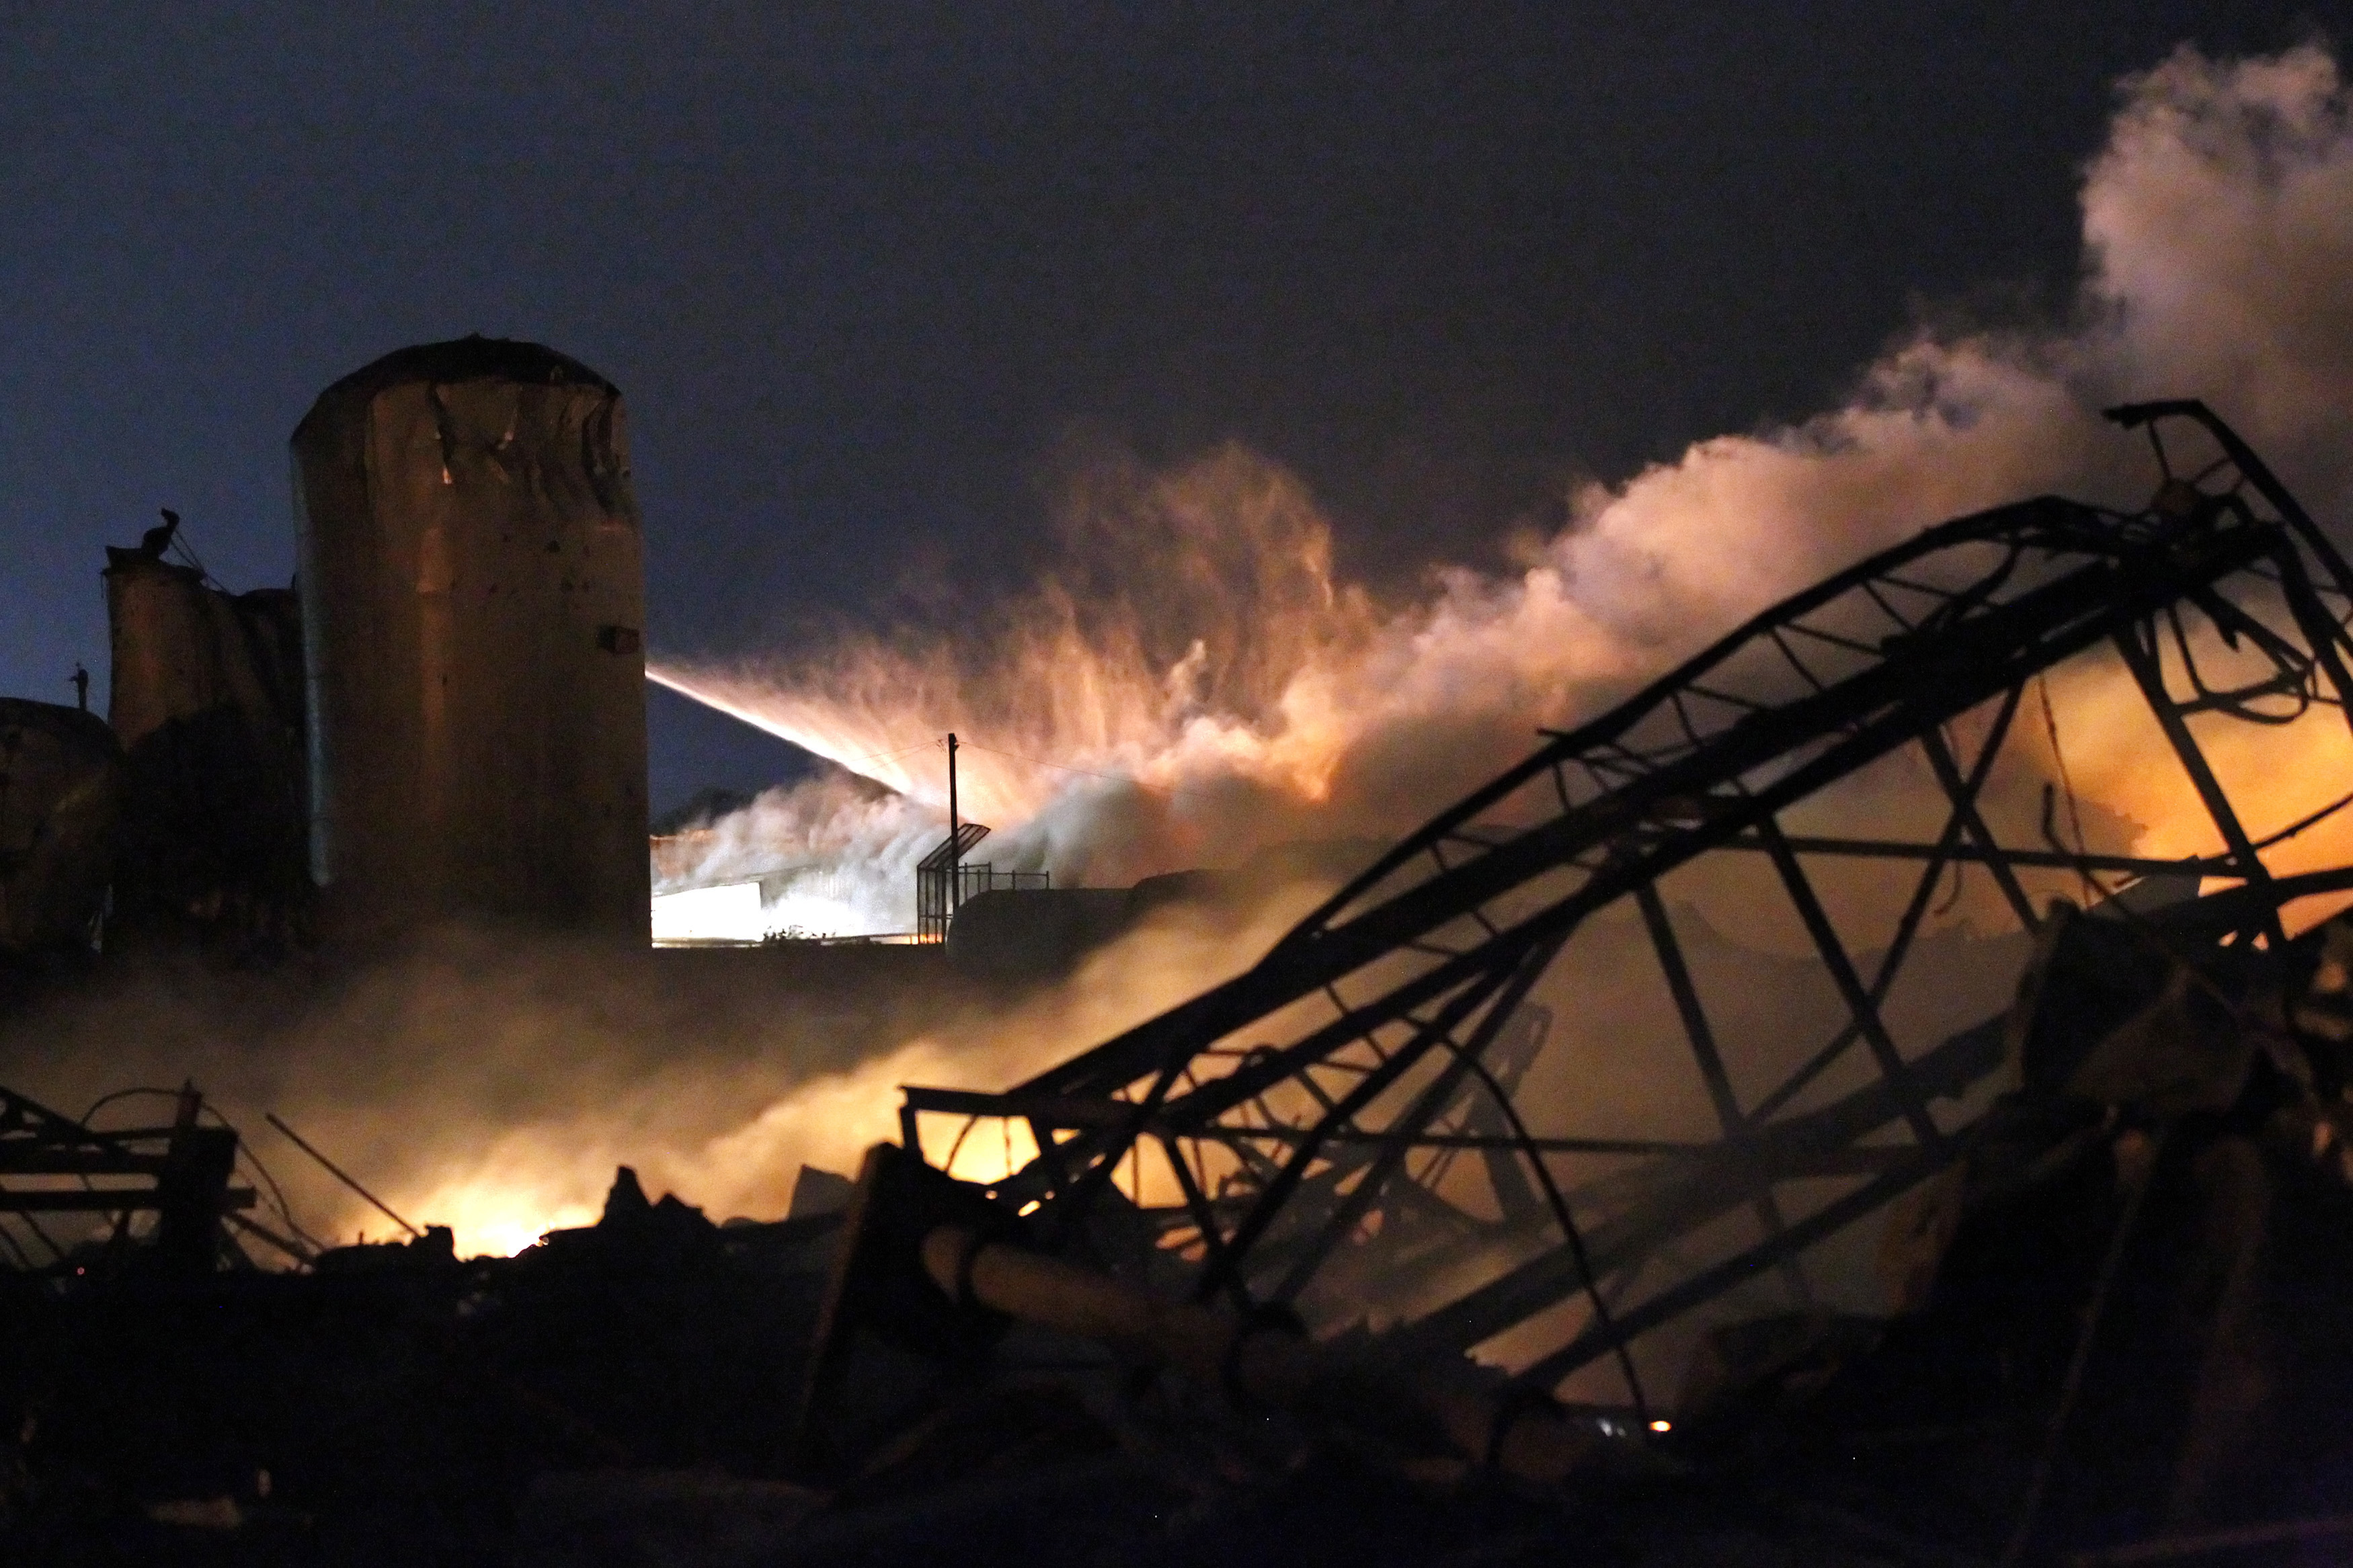 Smoke rises as water is sprayed after an explosion at a fertilizer plant in the town of West, Texas.